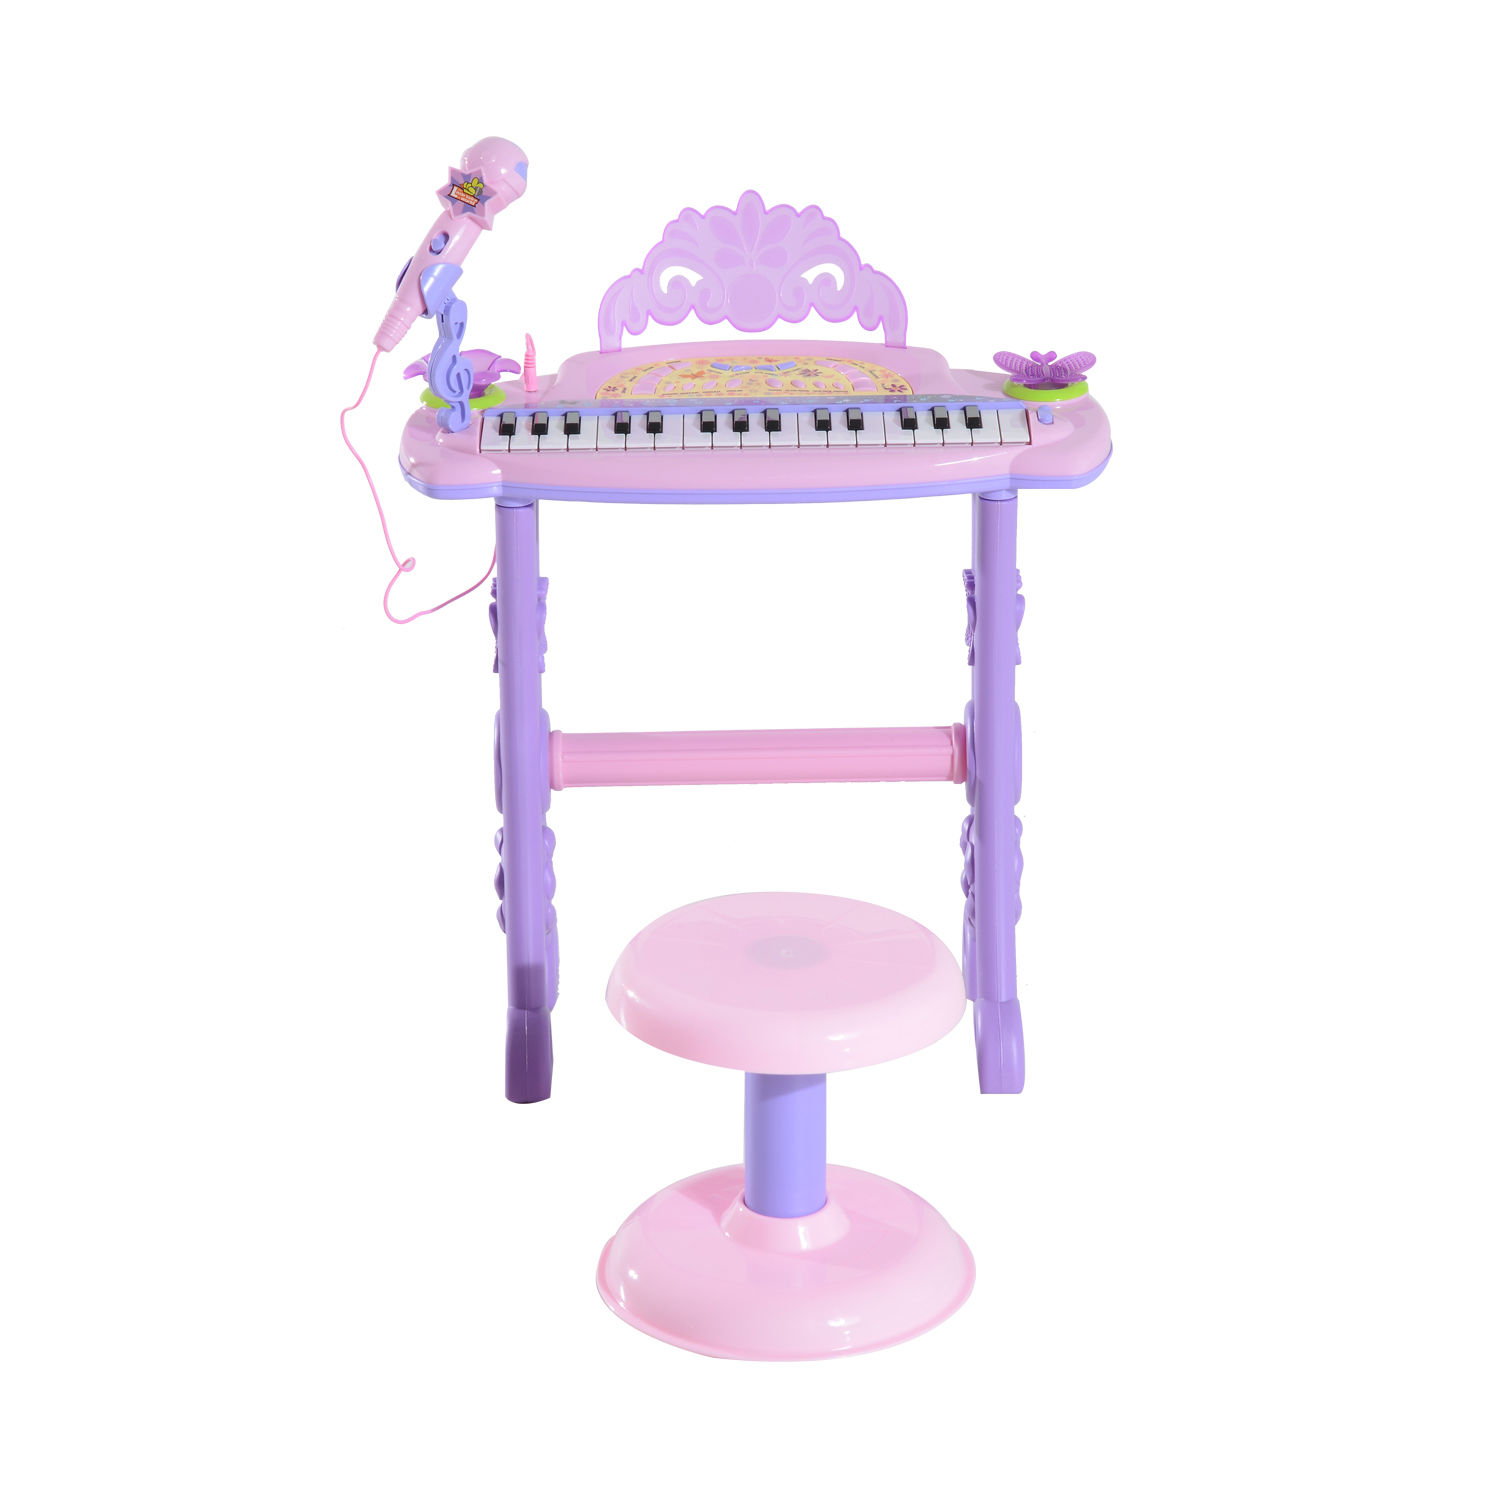 37-32-Key-Kids-Electronic-Keyboard-Mini-Grand-Piano-Stool-Microphone-Musical-Toy thumbnail 38